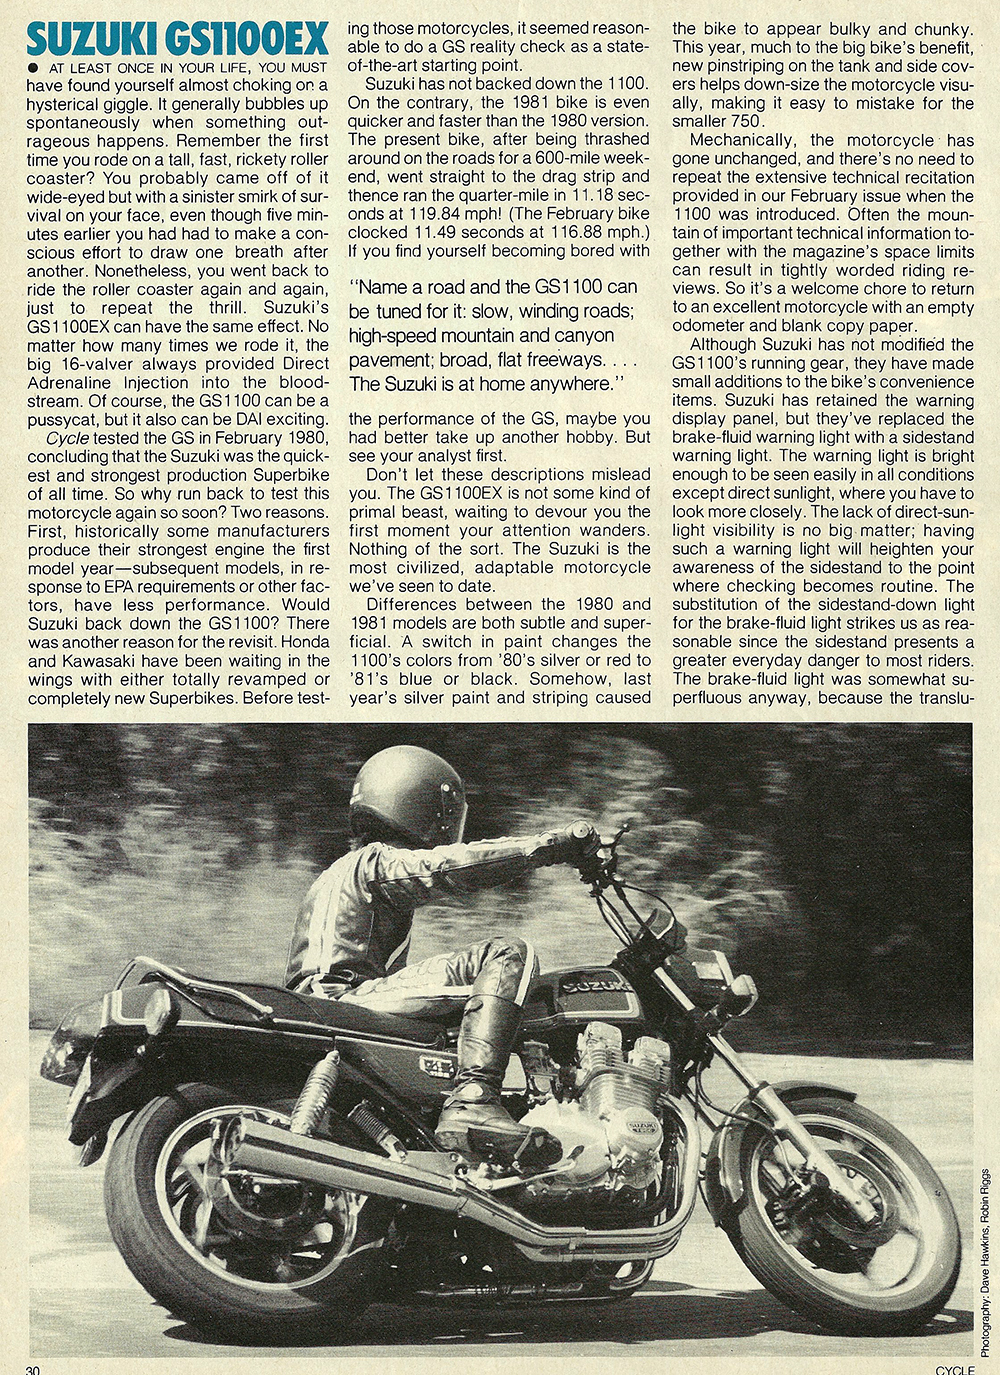 1980 Suzuki GS1100EX road test 03.jpg